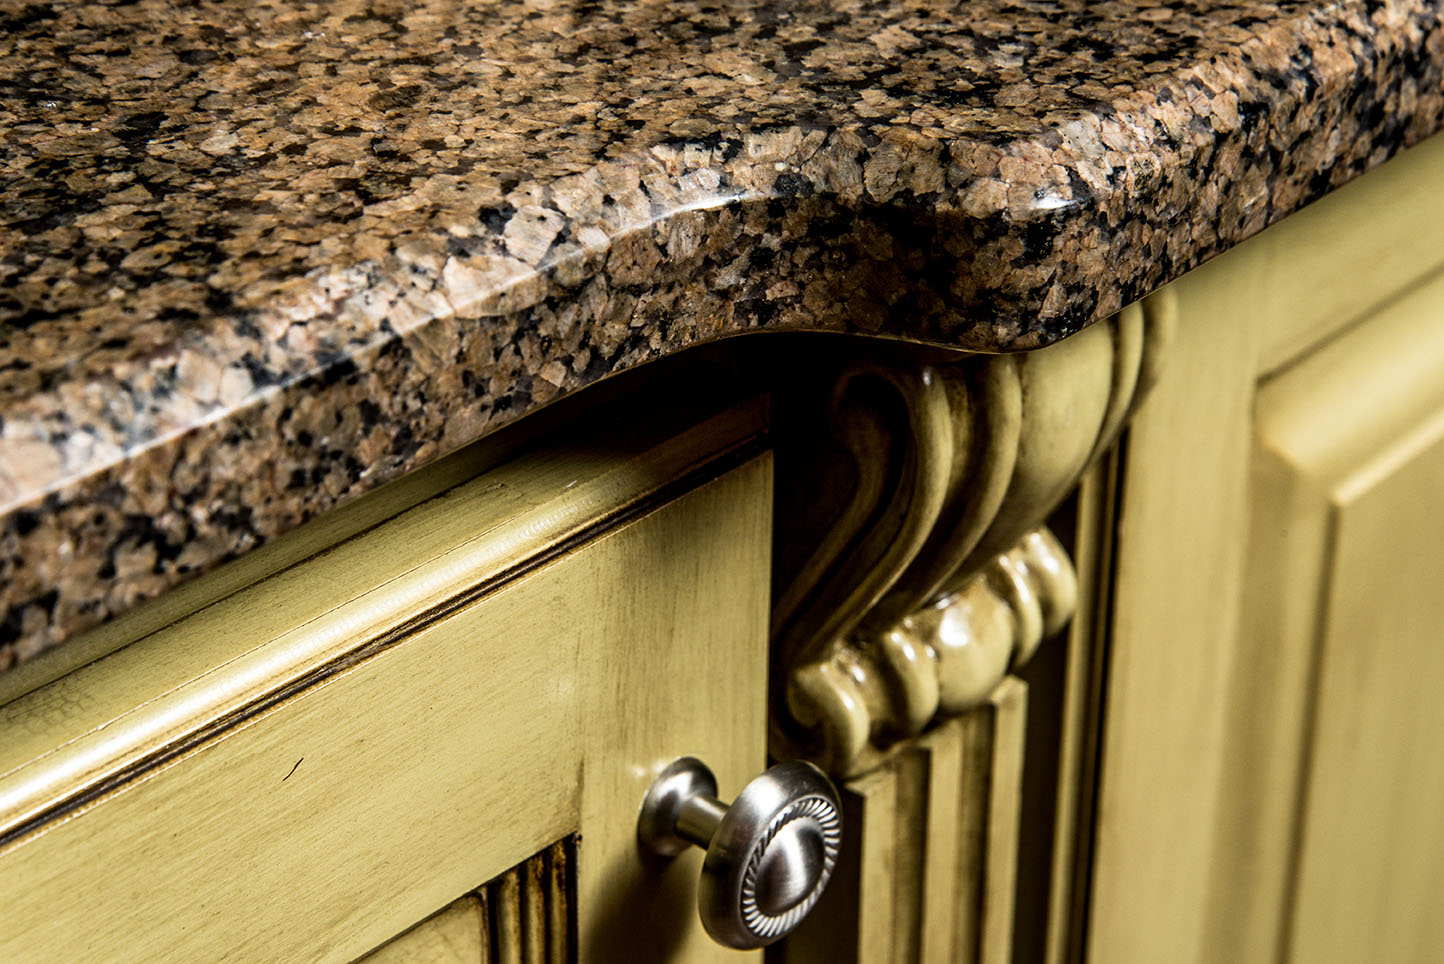 Tropic Brown Granite Countertops are a great contrast with earthy greens and browns